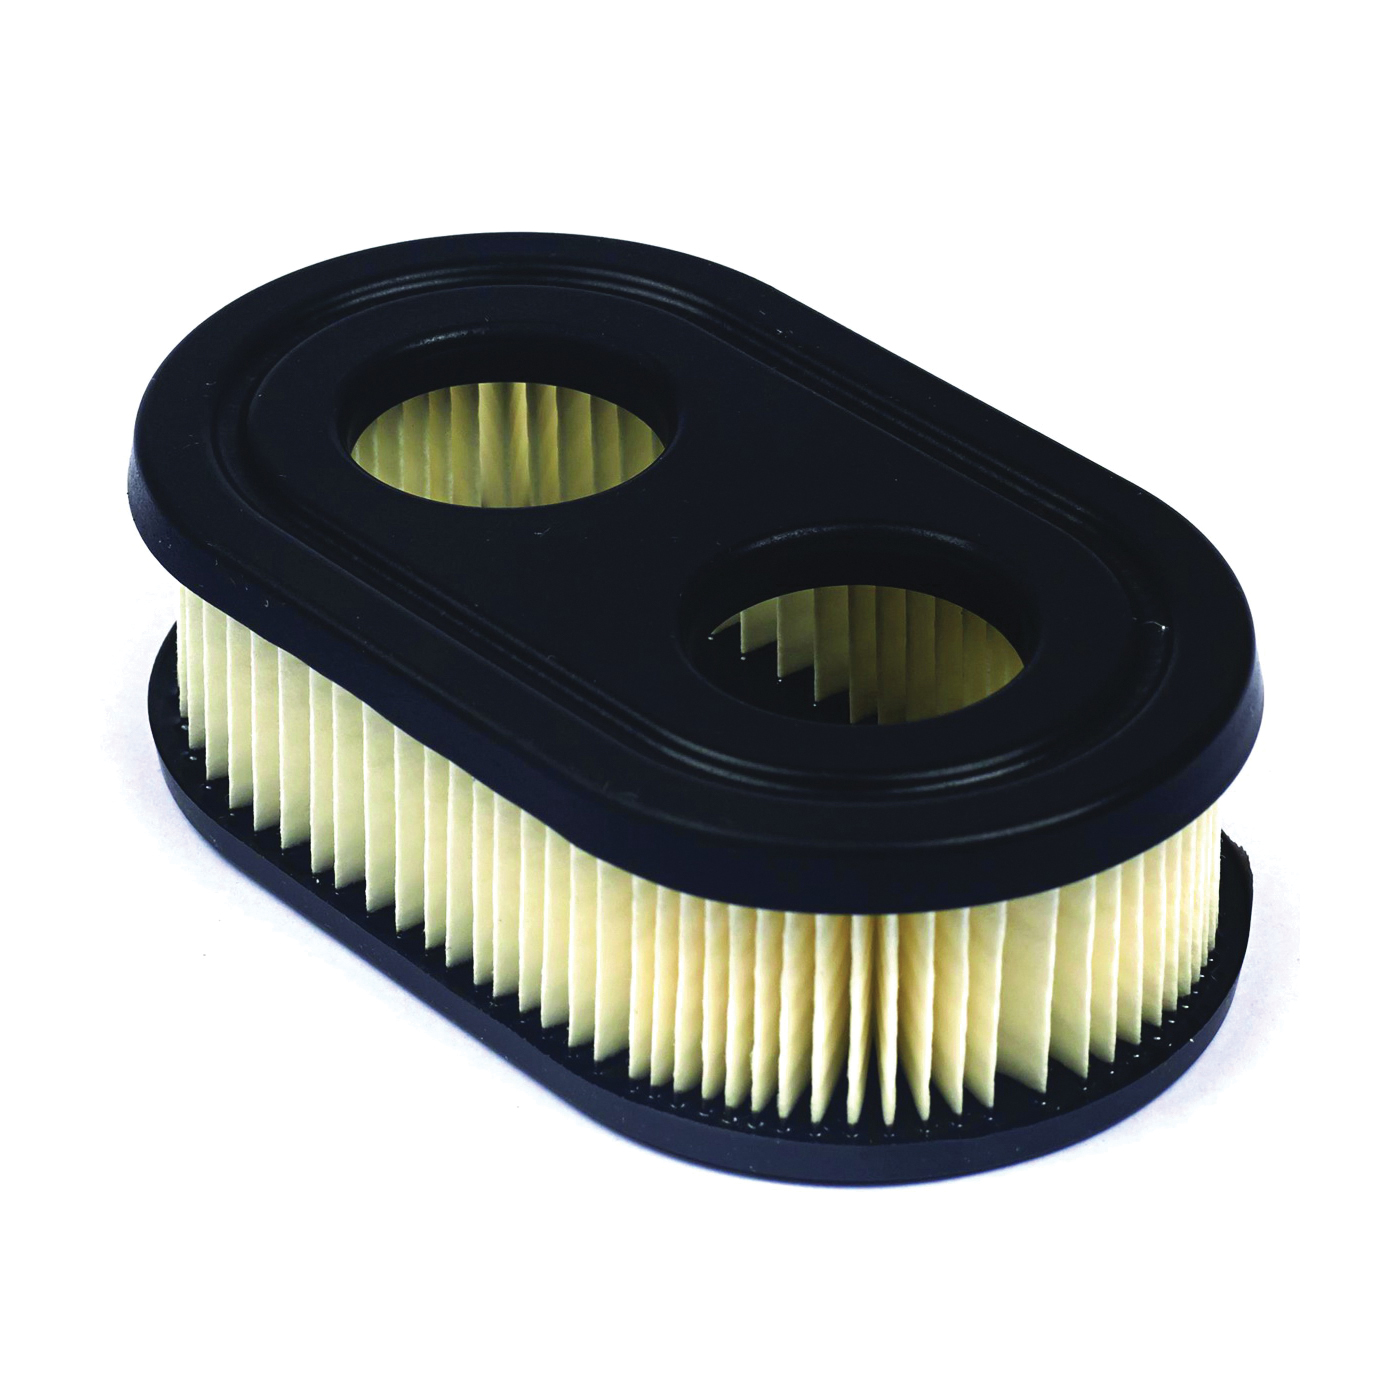 Picture of BRIGGS & STRATTON 5432K Air Filter, Paper Filter Media, For: Briggs & Stratton 550E and 550EX Engines